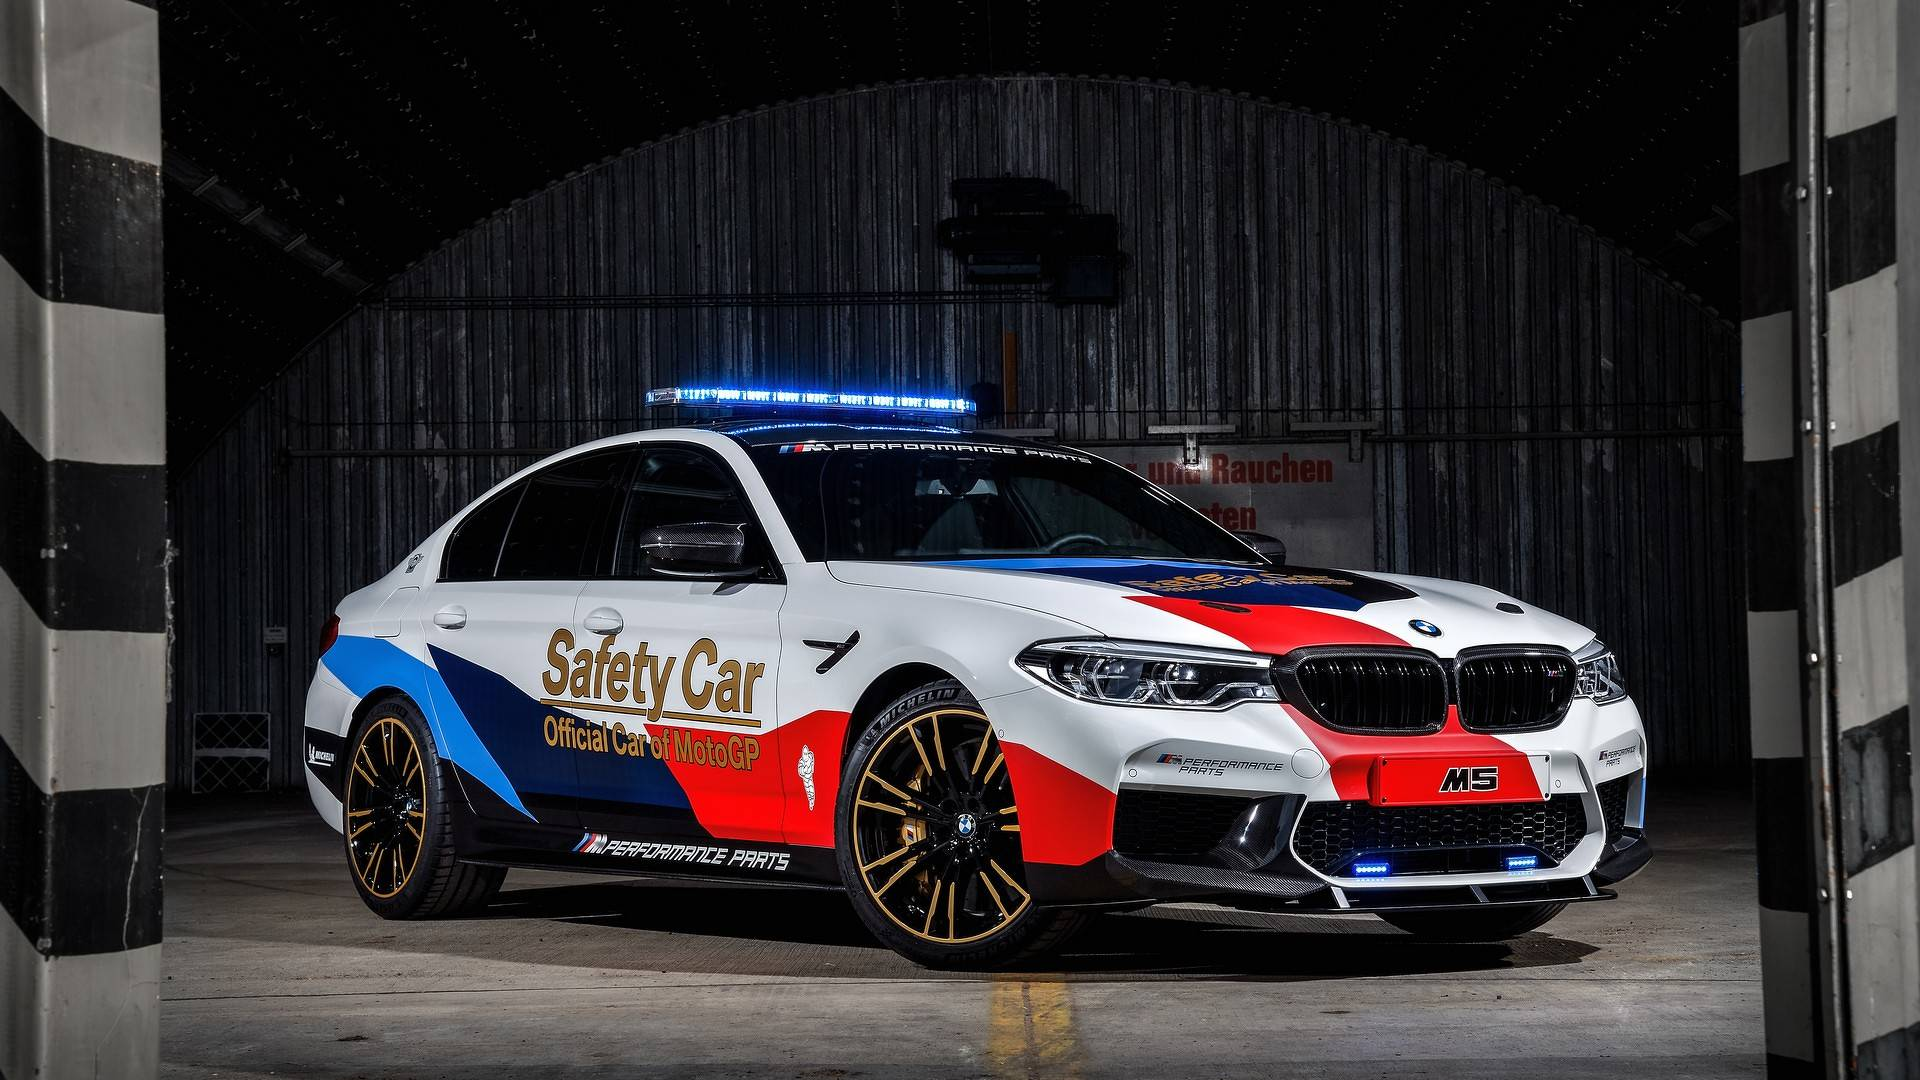 bmw-m5-motogp-safety-car